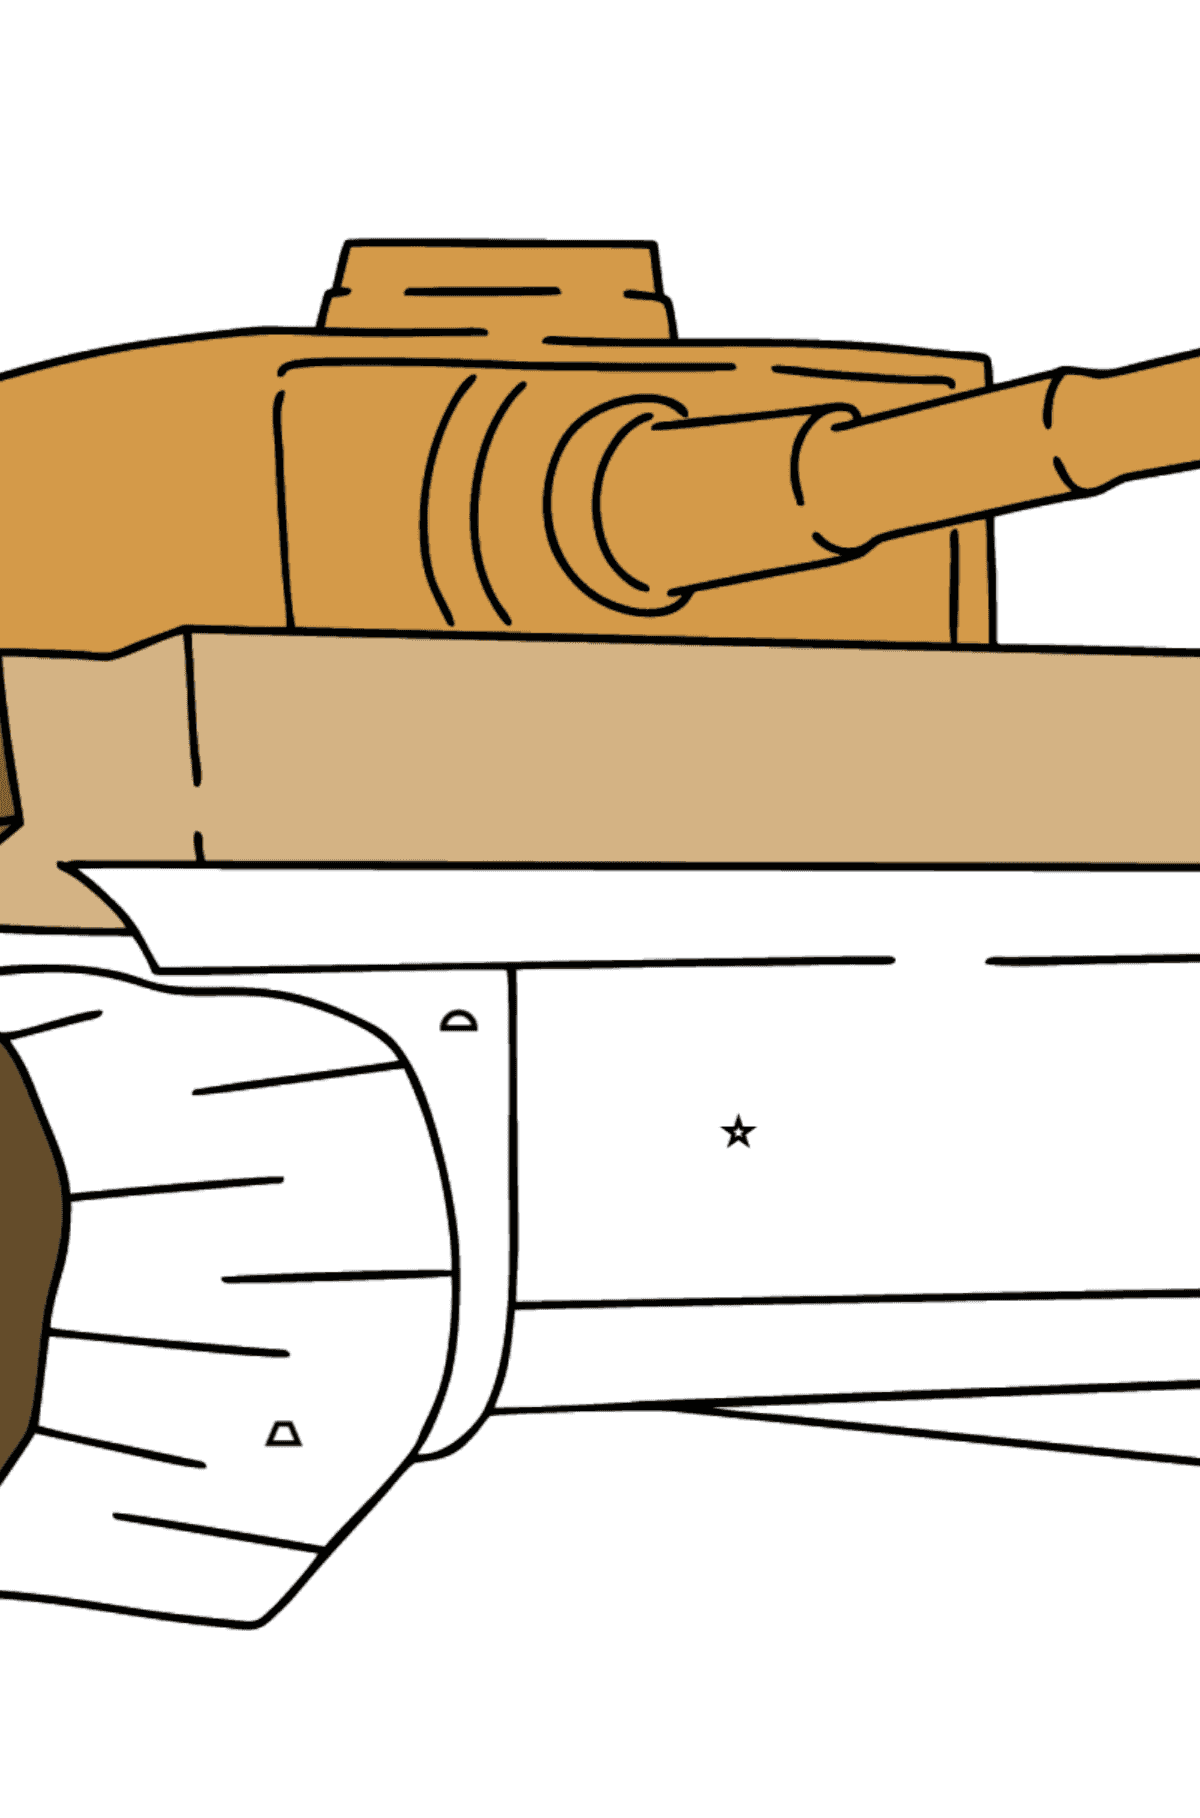 Tank Tiger coloring page - Coloring by Geometric Shapes for Kids